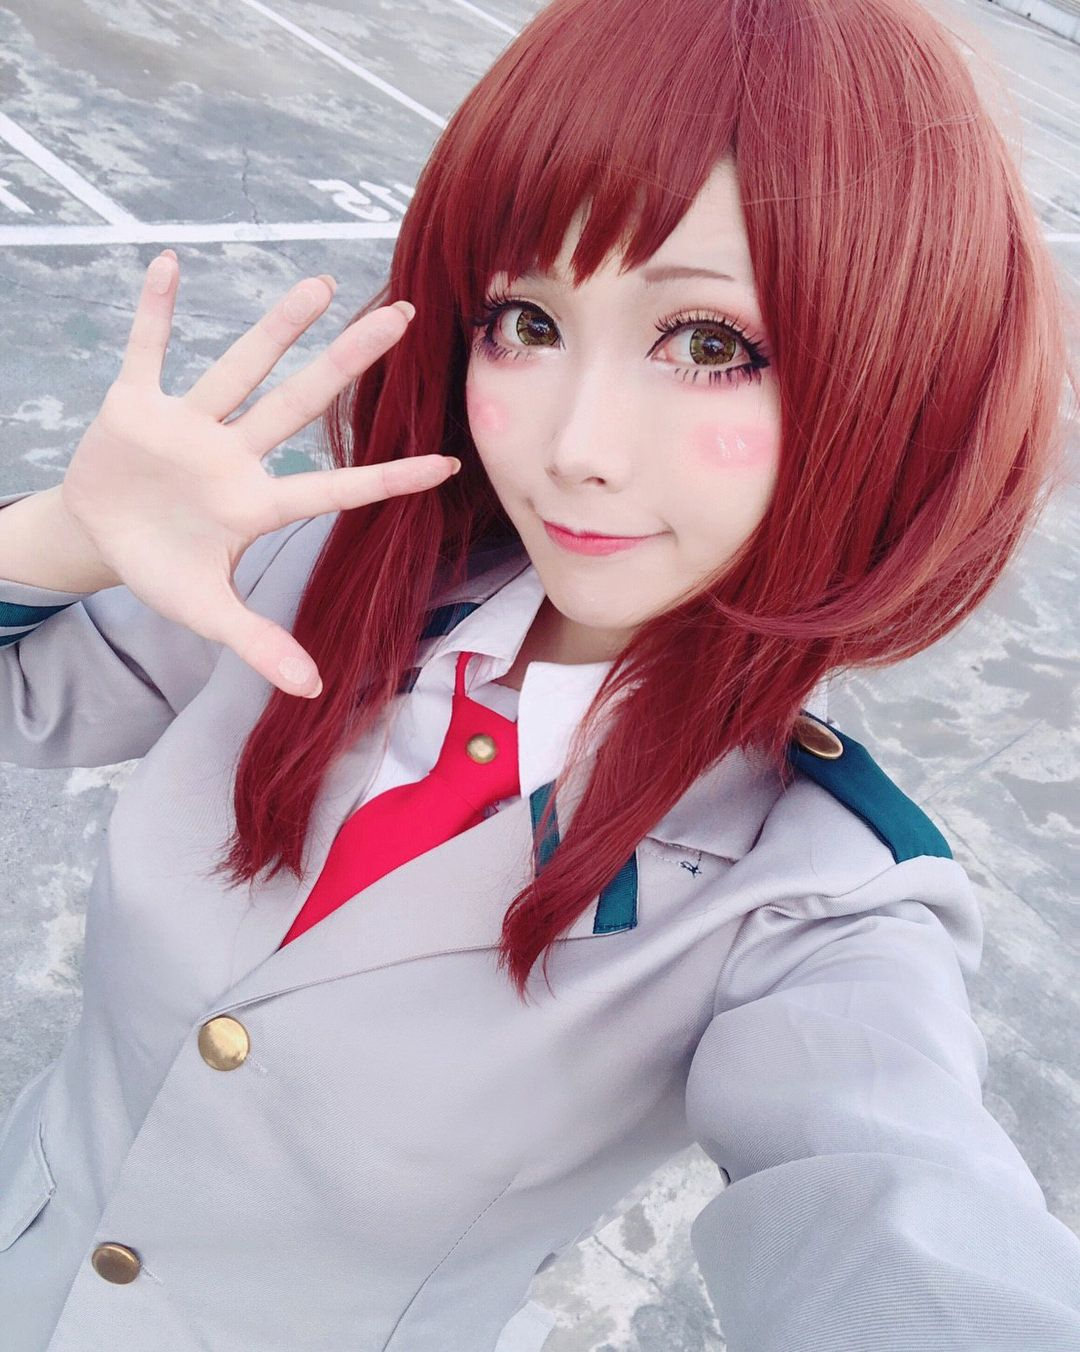 Gravity Girl, Uraraka cosplay!,GirlGravity Cute